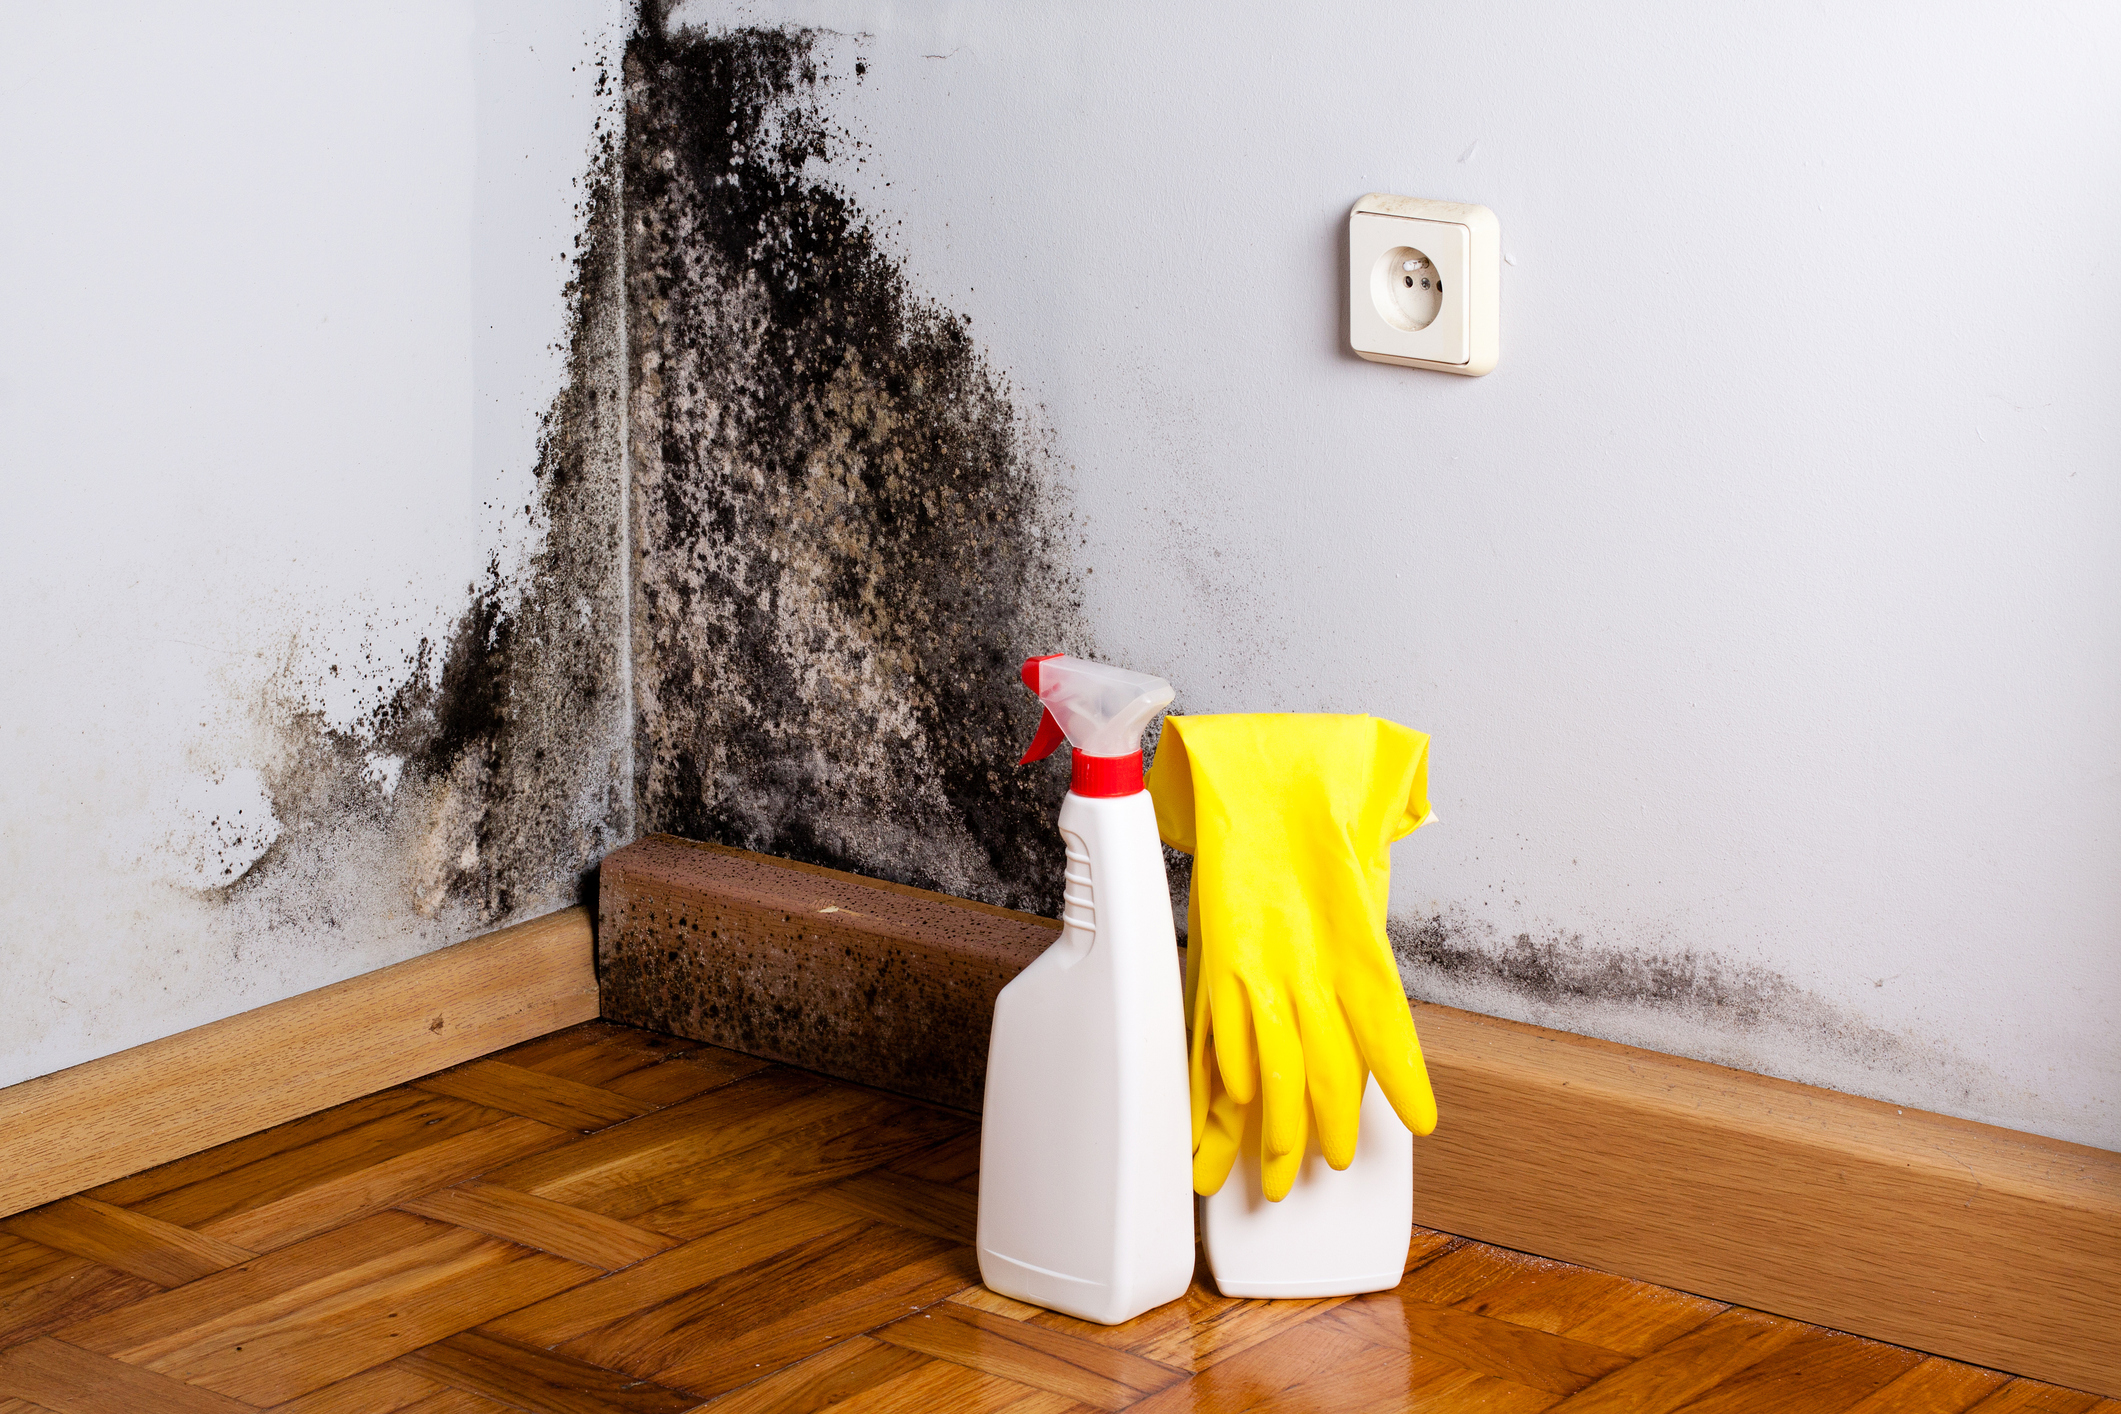 Black Mold Removal in Vancouver